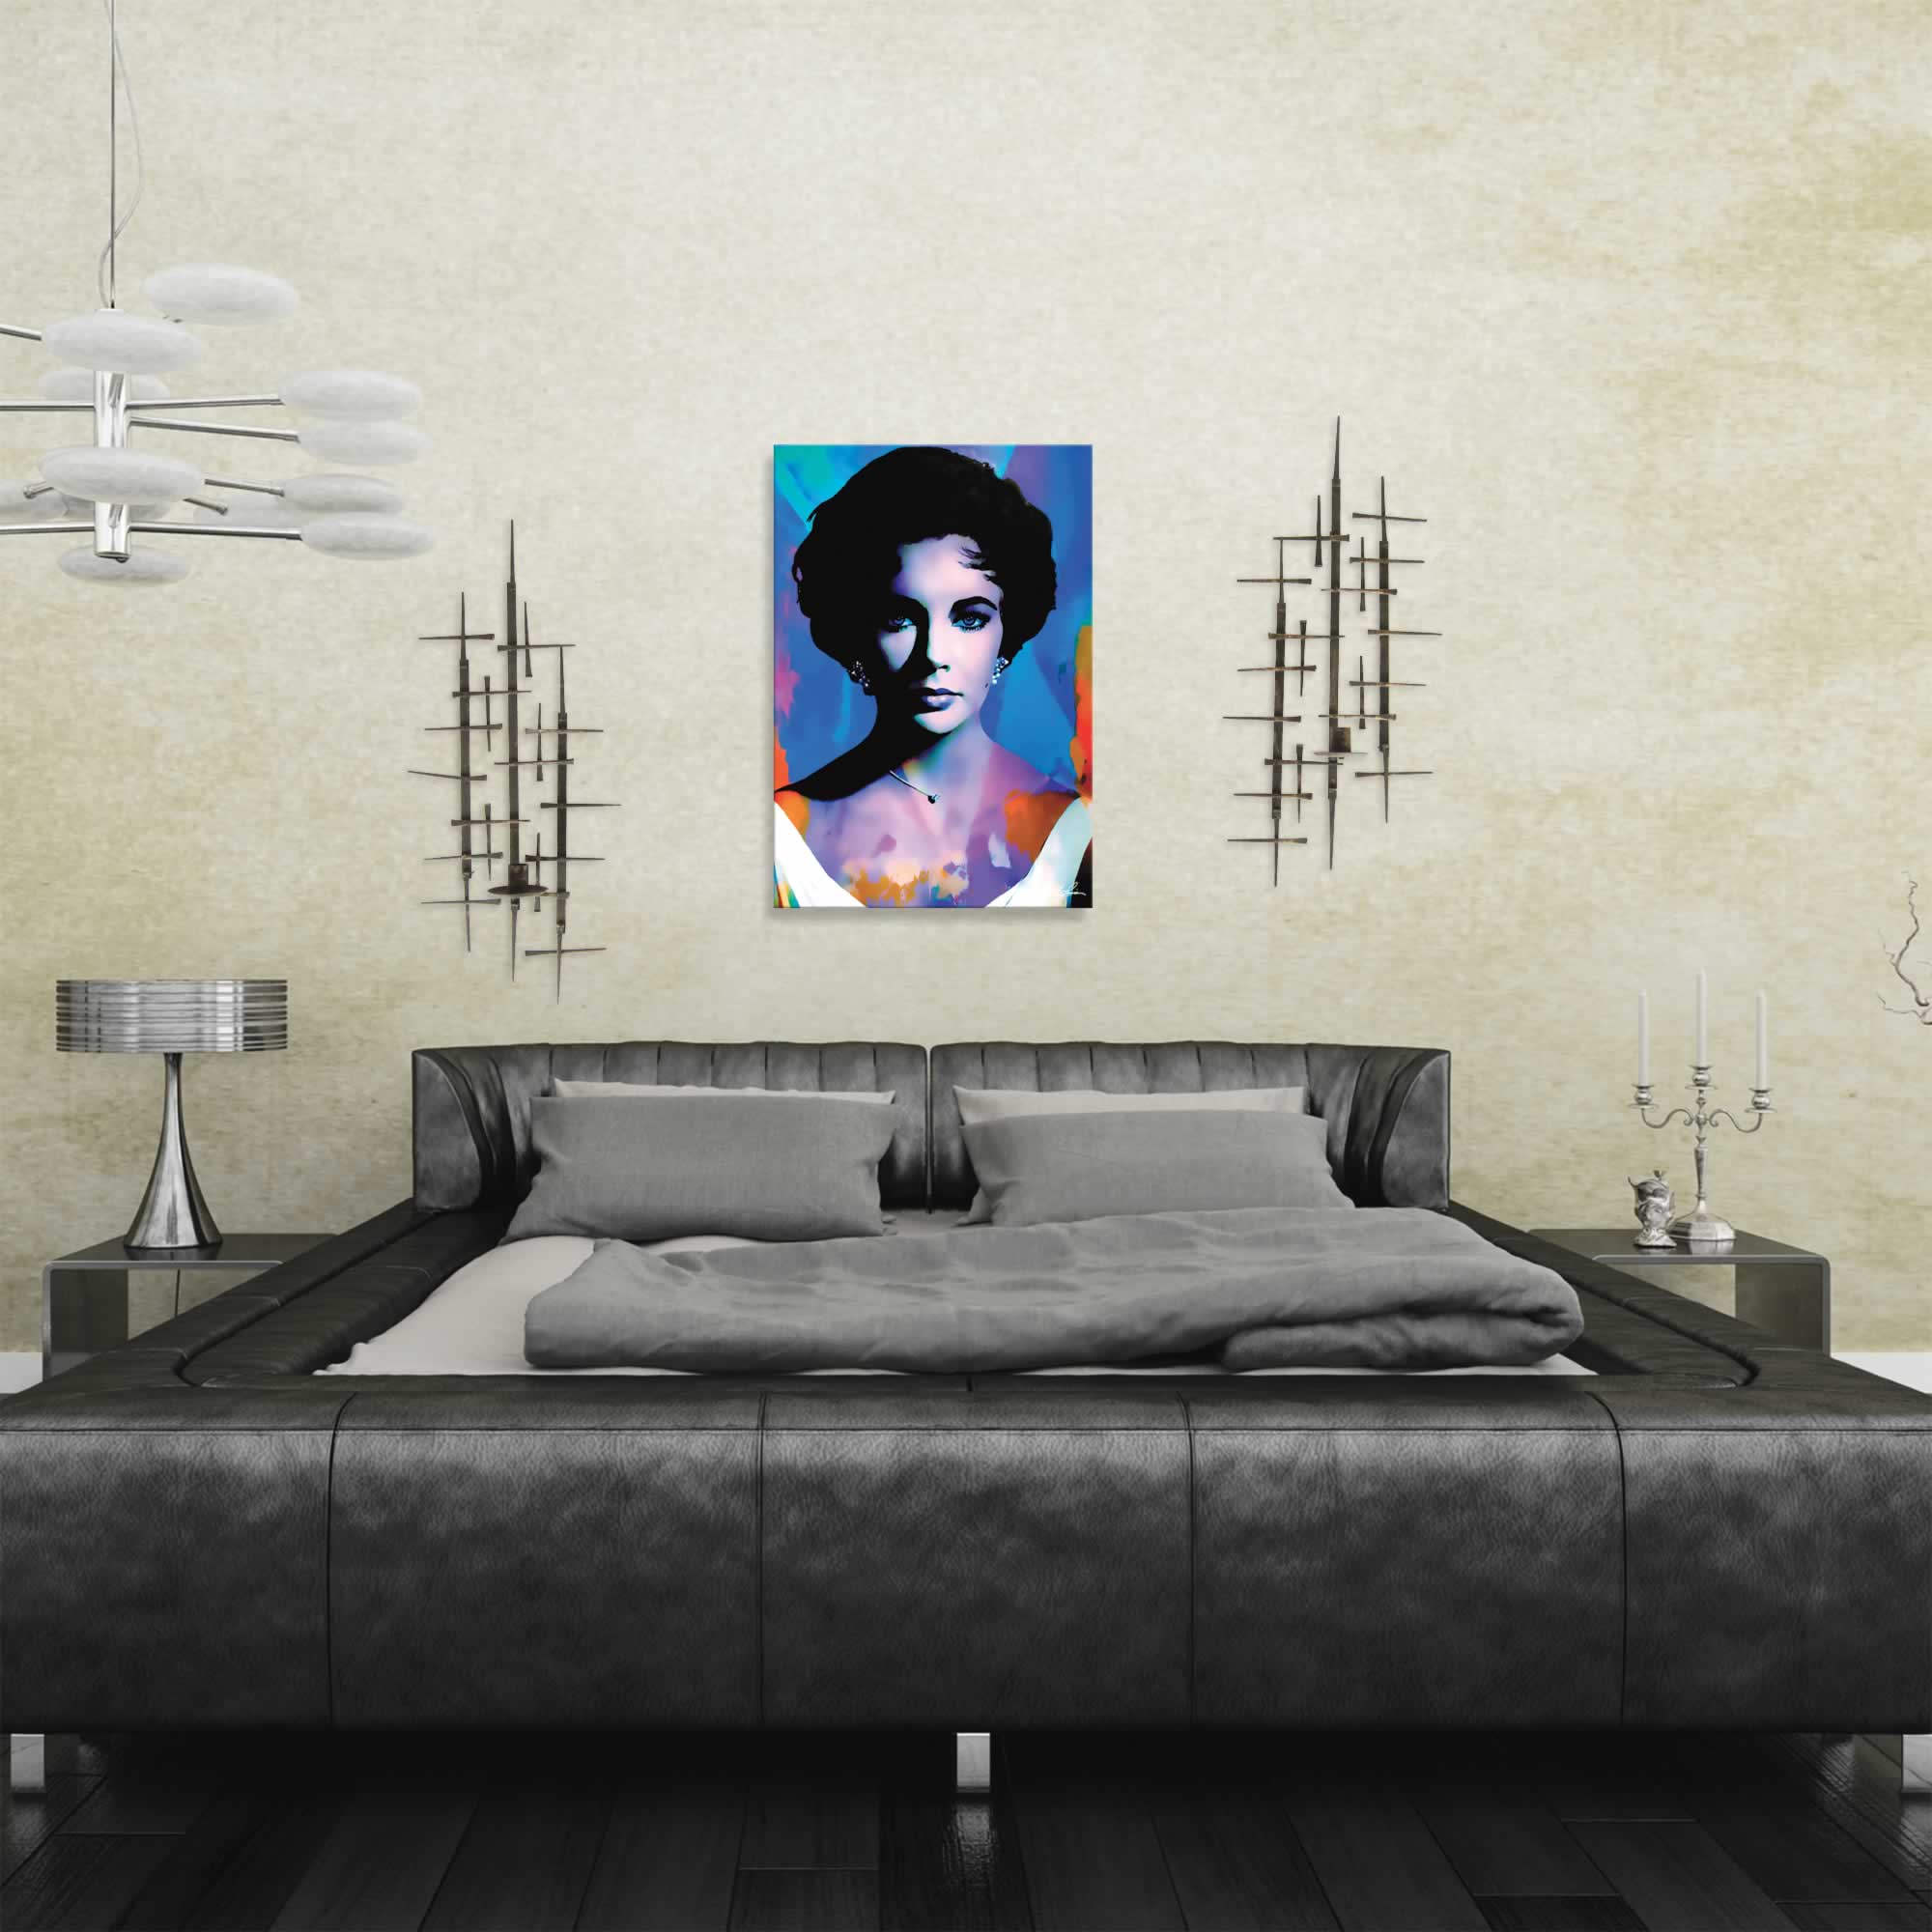 Elizabeth Taylor The Color of Passion | Pop Art Painting by Mark Lewis, Signed & Numbered Limited Edition - ML0012